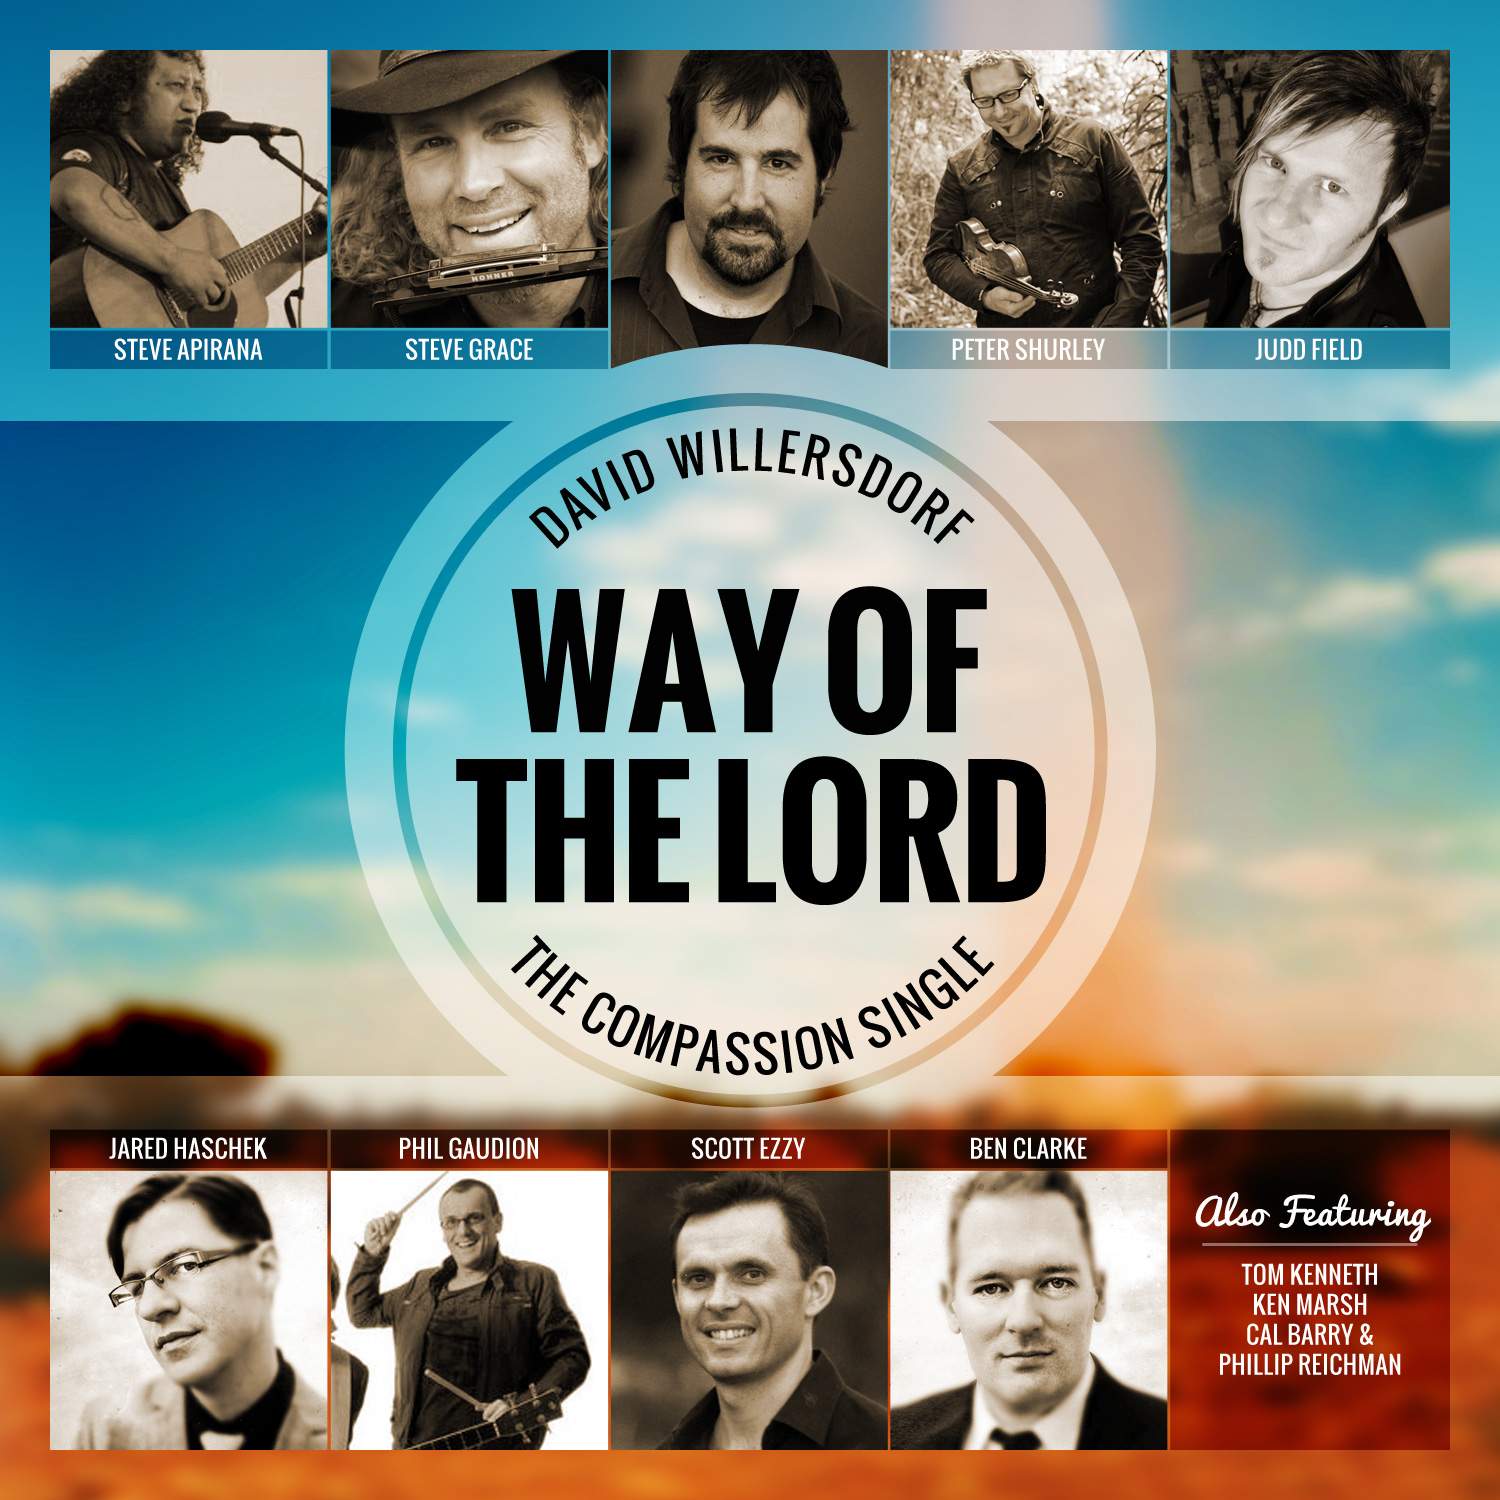 Way-of-the-Lord-Cover.jpg